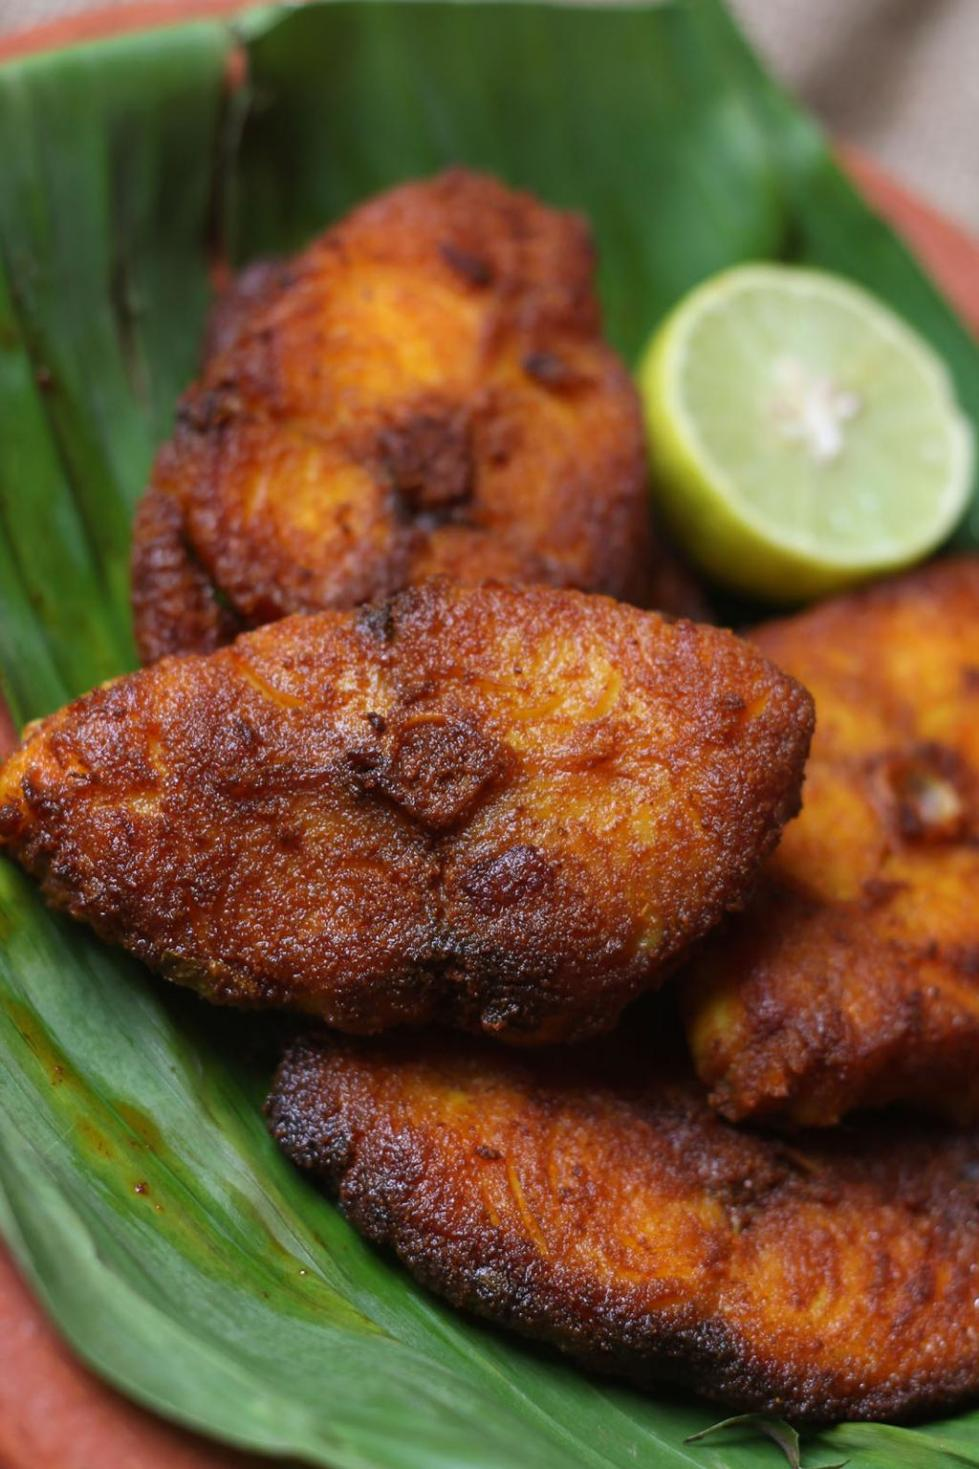 Kerala fish fry meen varuthathu recipe sujis cooking spicy fish fry is an important item in the south indian non vegetarian mealsy south indian non vegetarian meal is incomplete with out this delicacy forumfinder Gallery